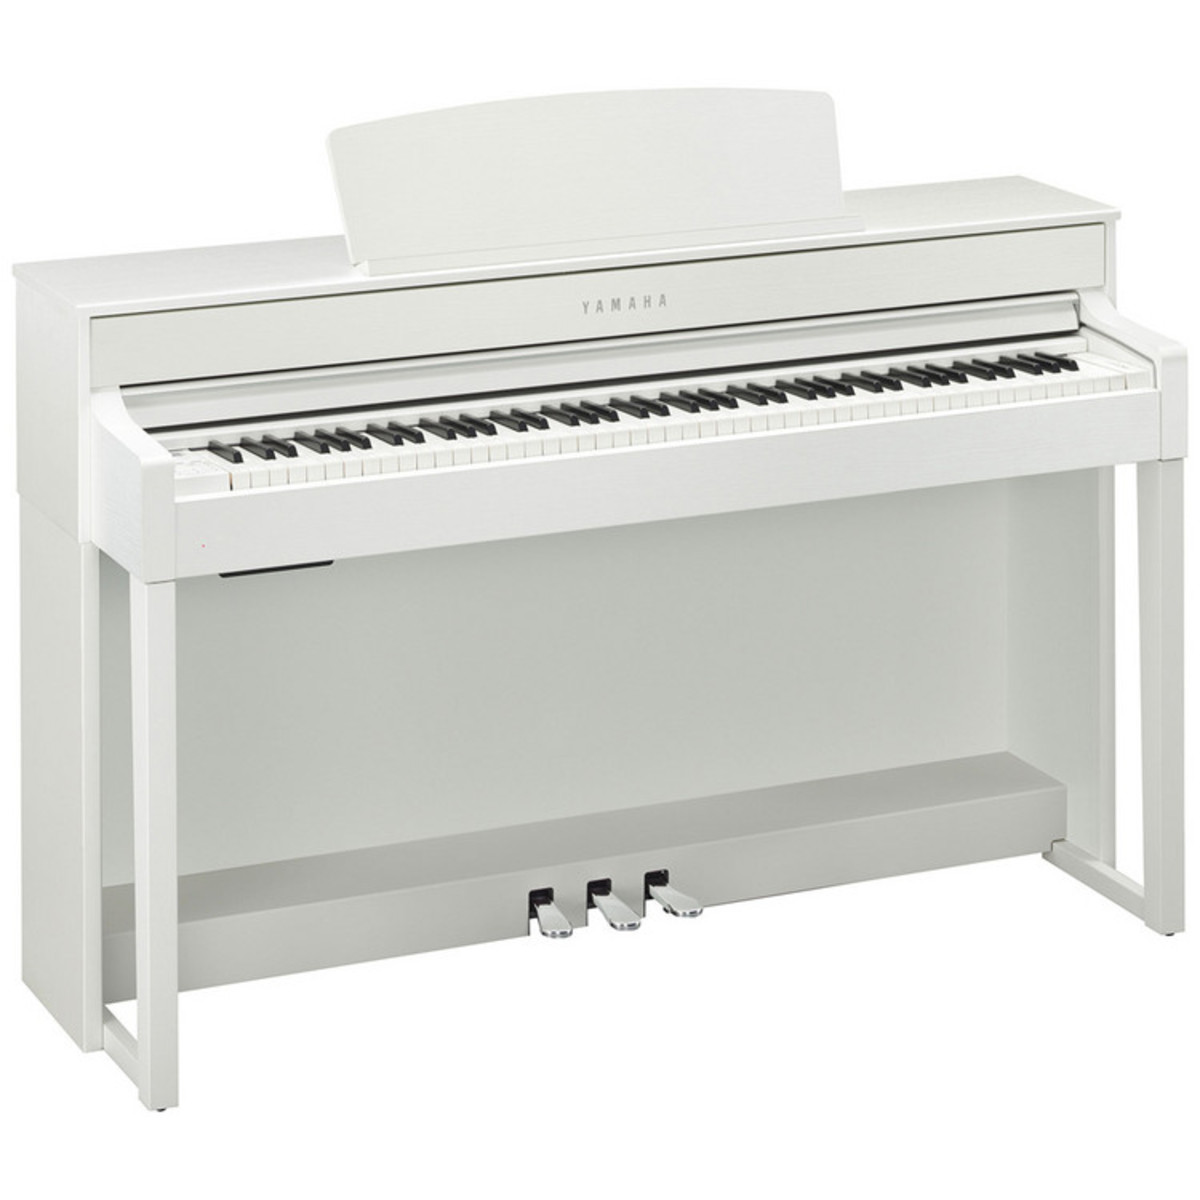 Yamaha clavinova clp545 digital piano white nearly new for White yamaha piano